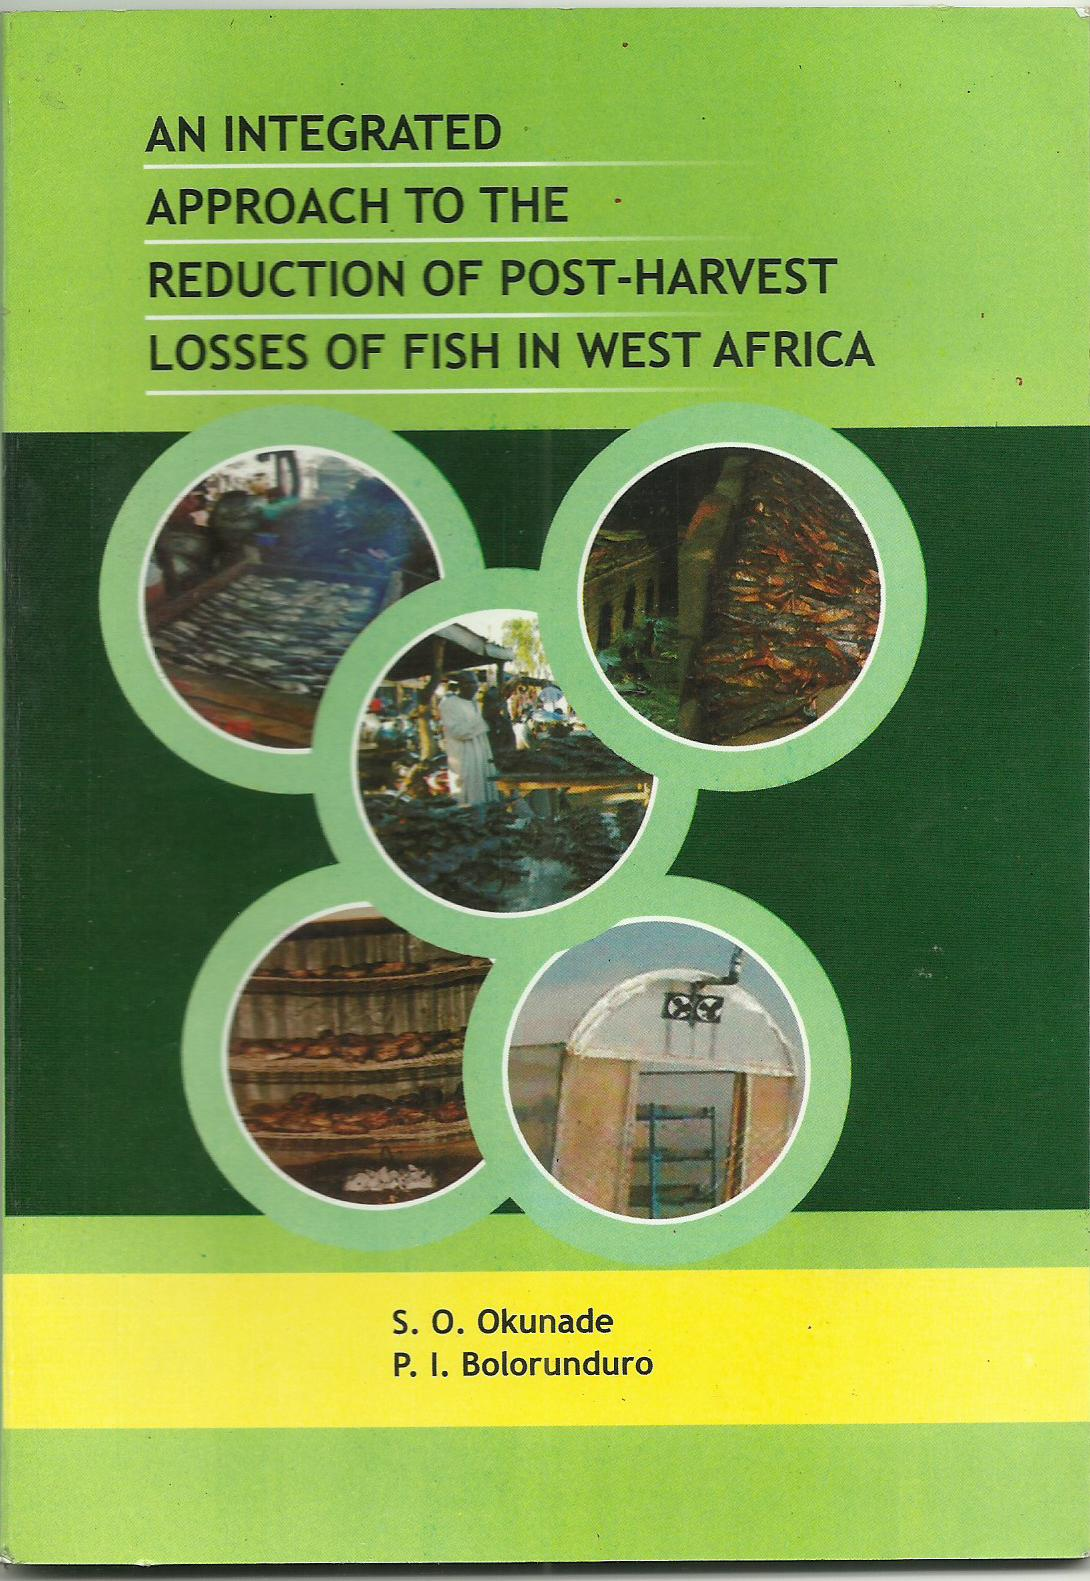 Cover of An Integrated Approach to the Reduction of Post-Harvest Losses of Fish in West Africa